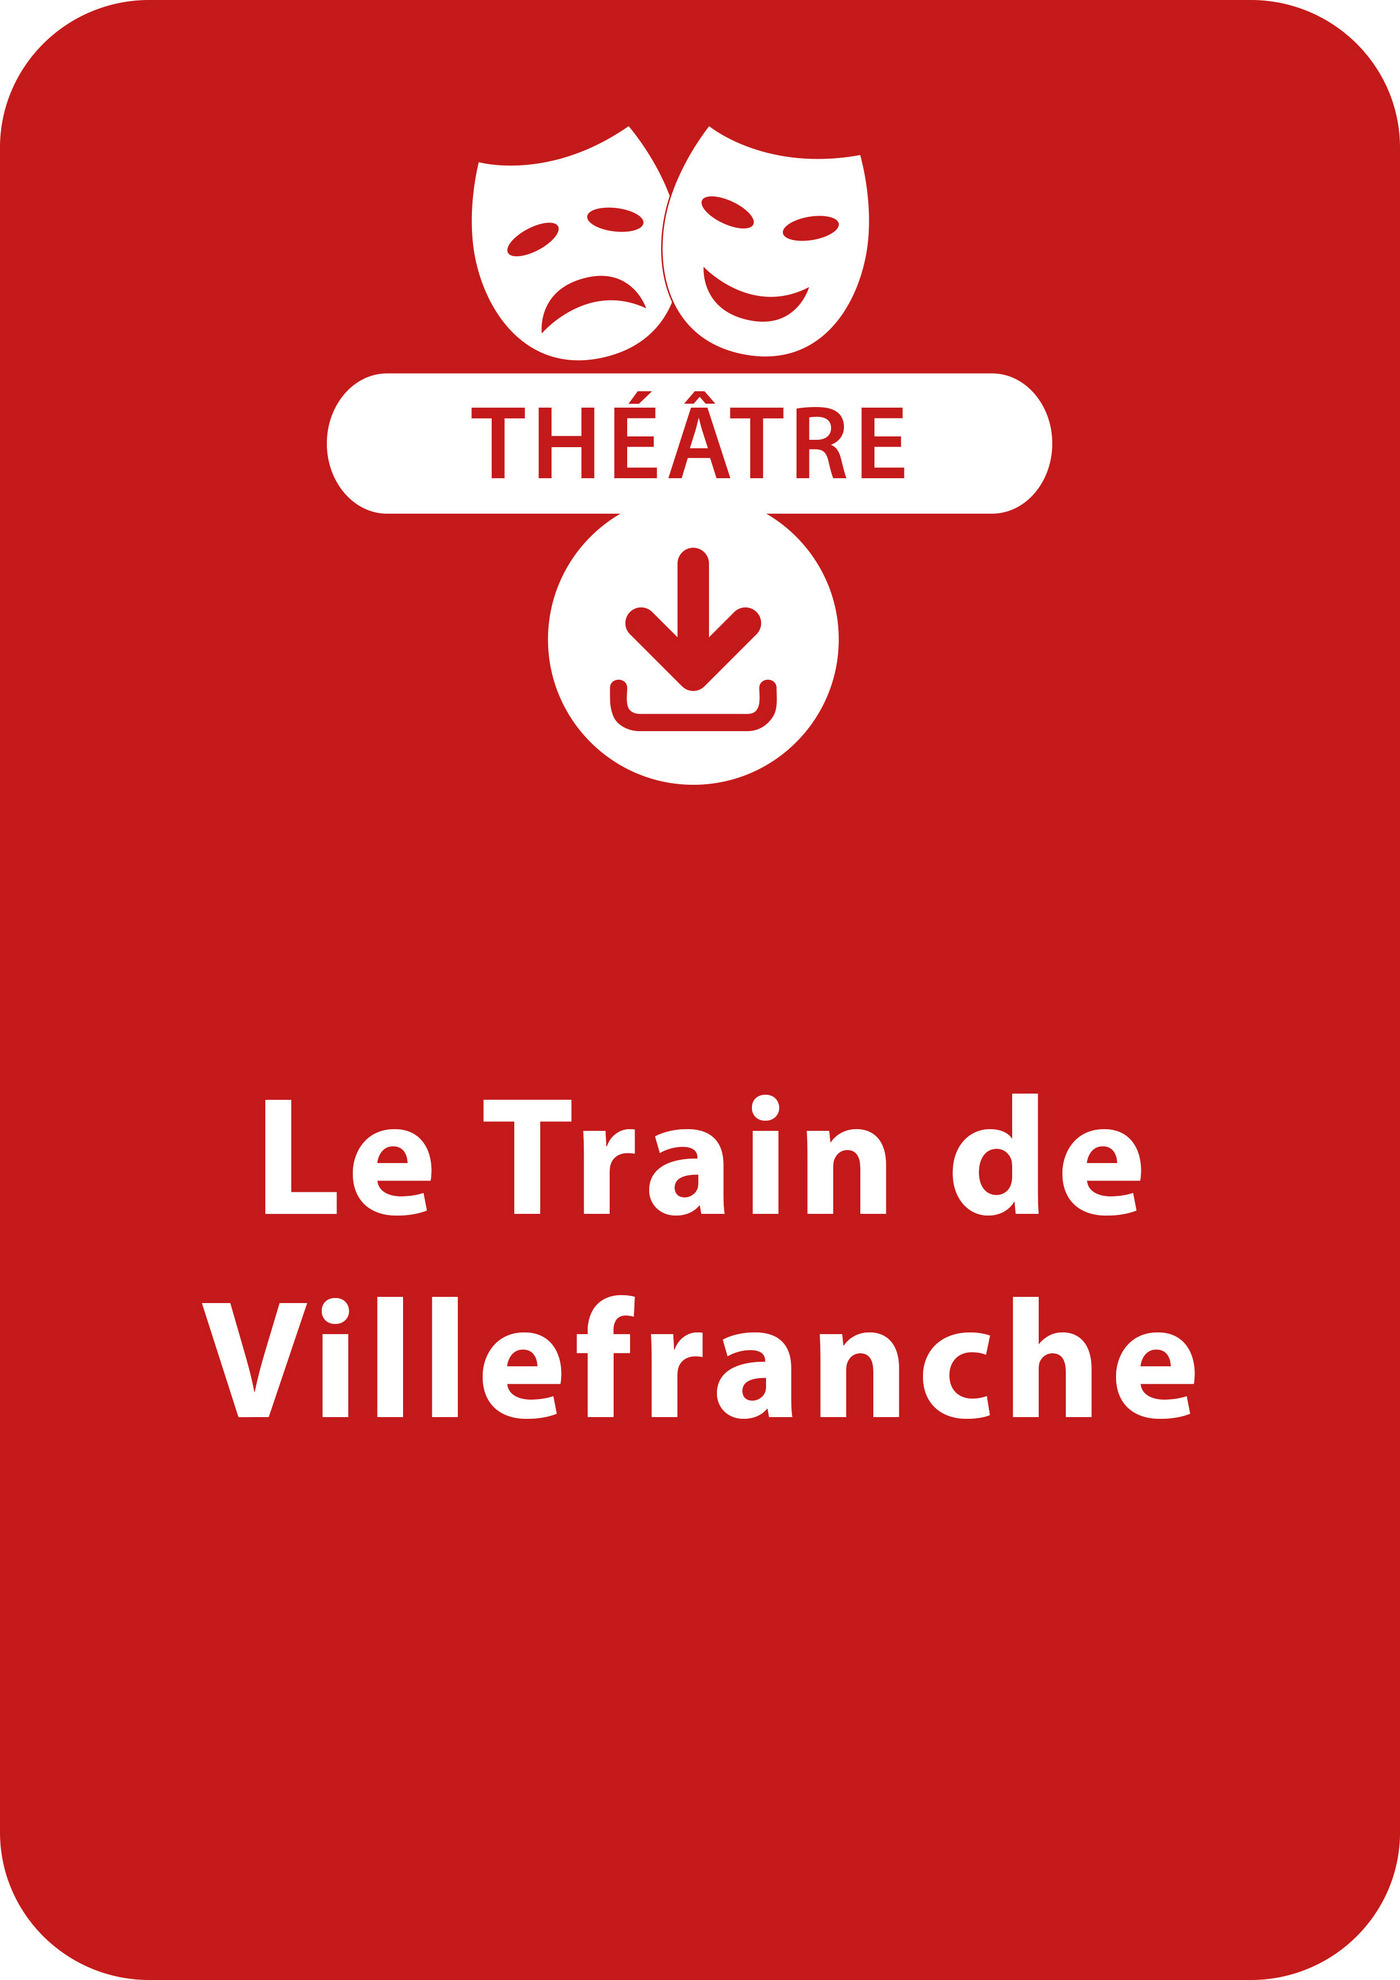 Le train de Villefranche